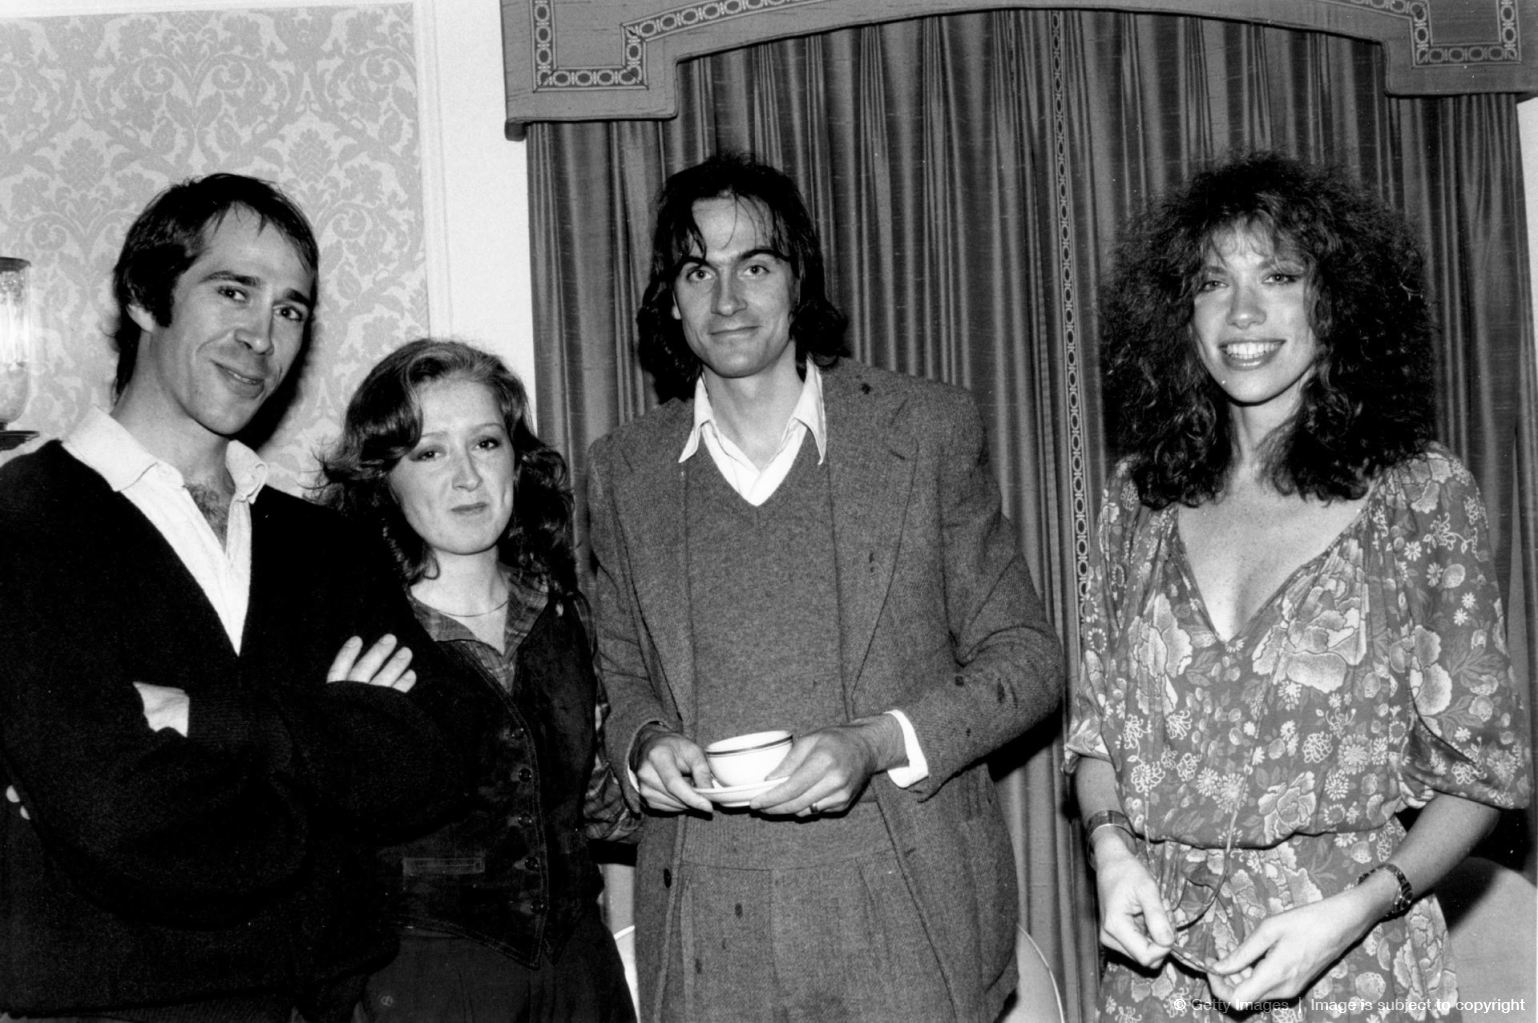 Musician and politician John Hall of the group 'Orleans', with singer/songwriters Bonnie Raitt, James Taylor and Carly Simon pose for a portrait backstage in circa 1980 © Robin Platzer /Getty Images